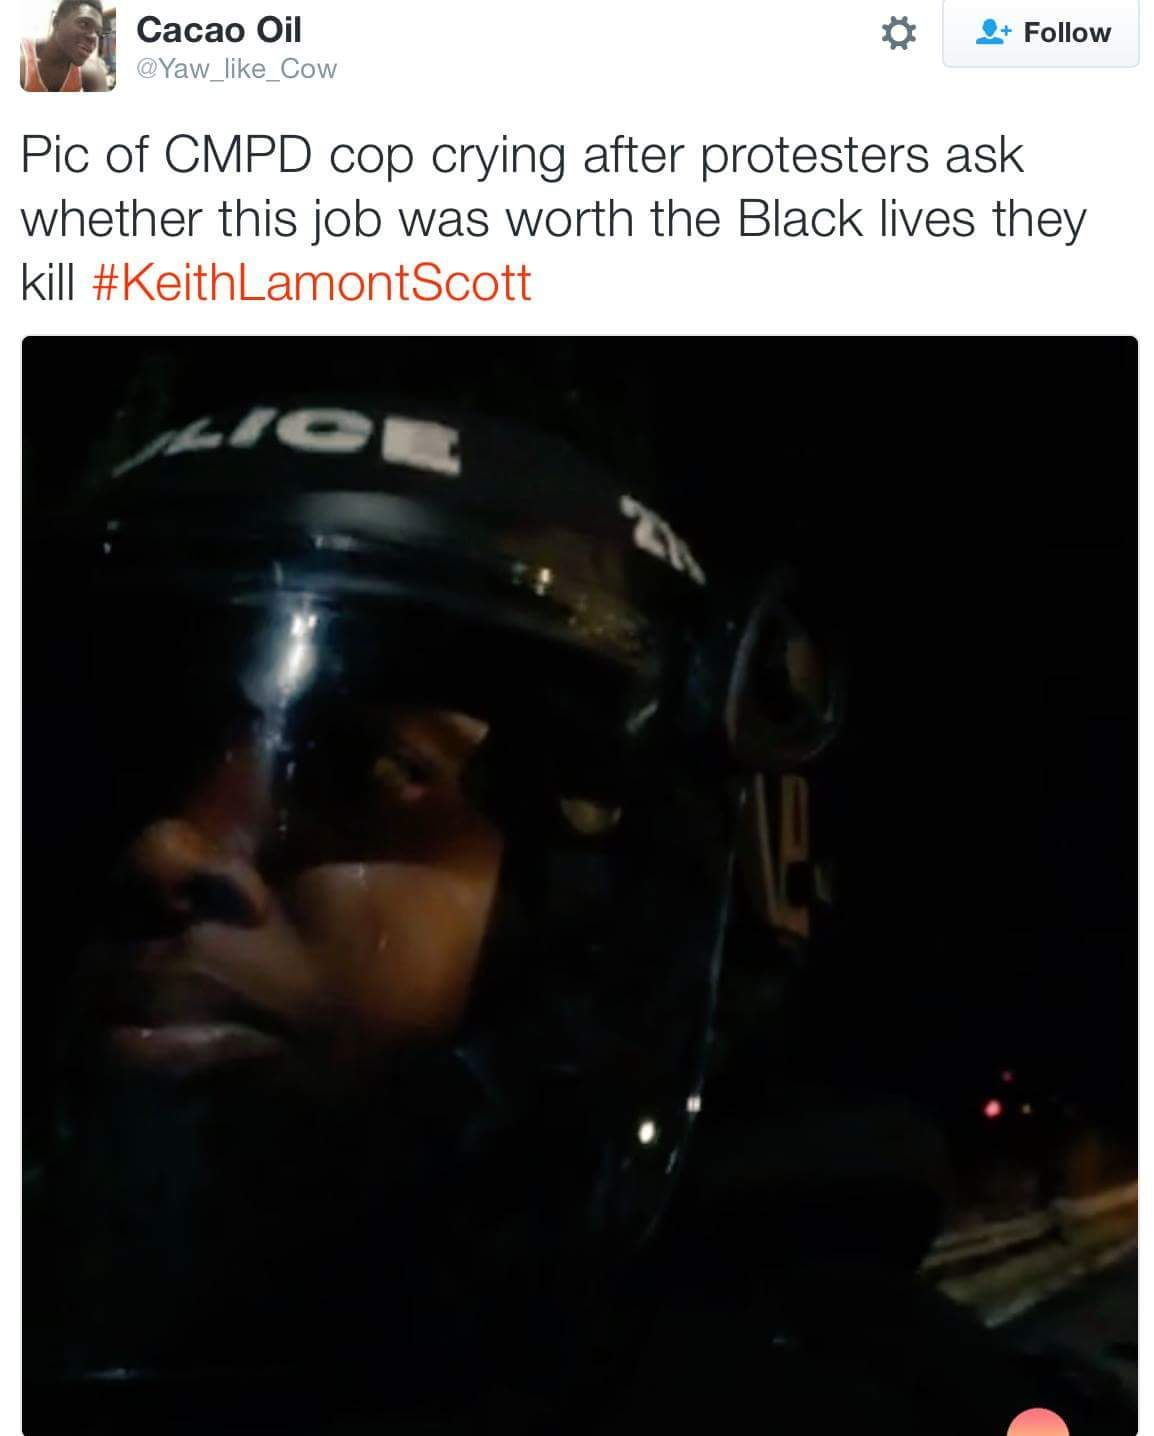 'Pic of CMPD cop crying after protesters ask whether this